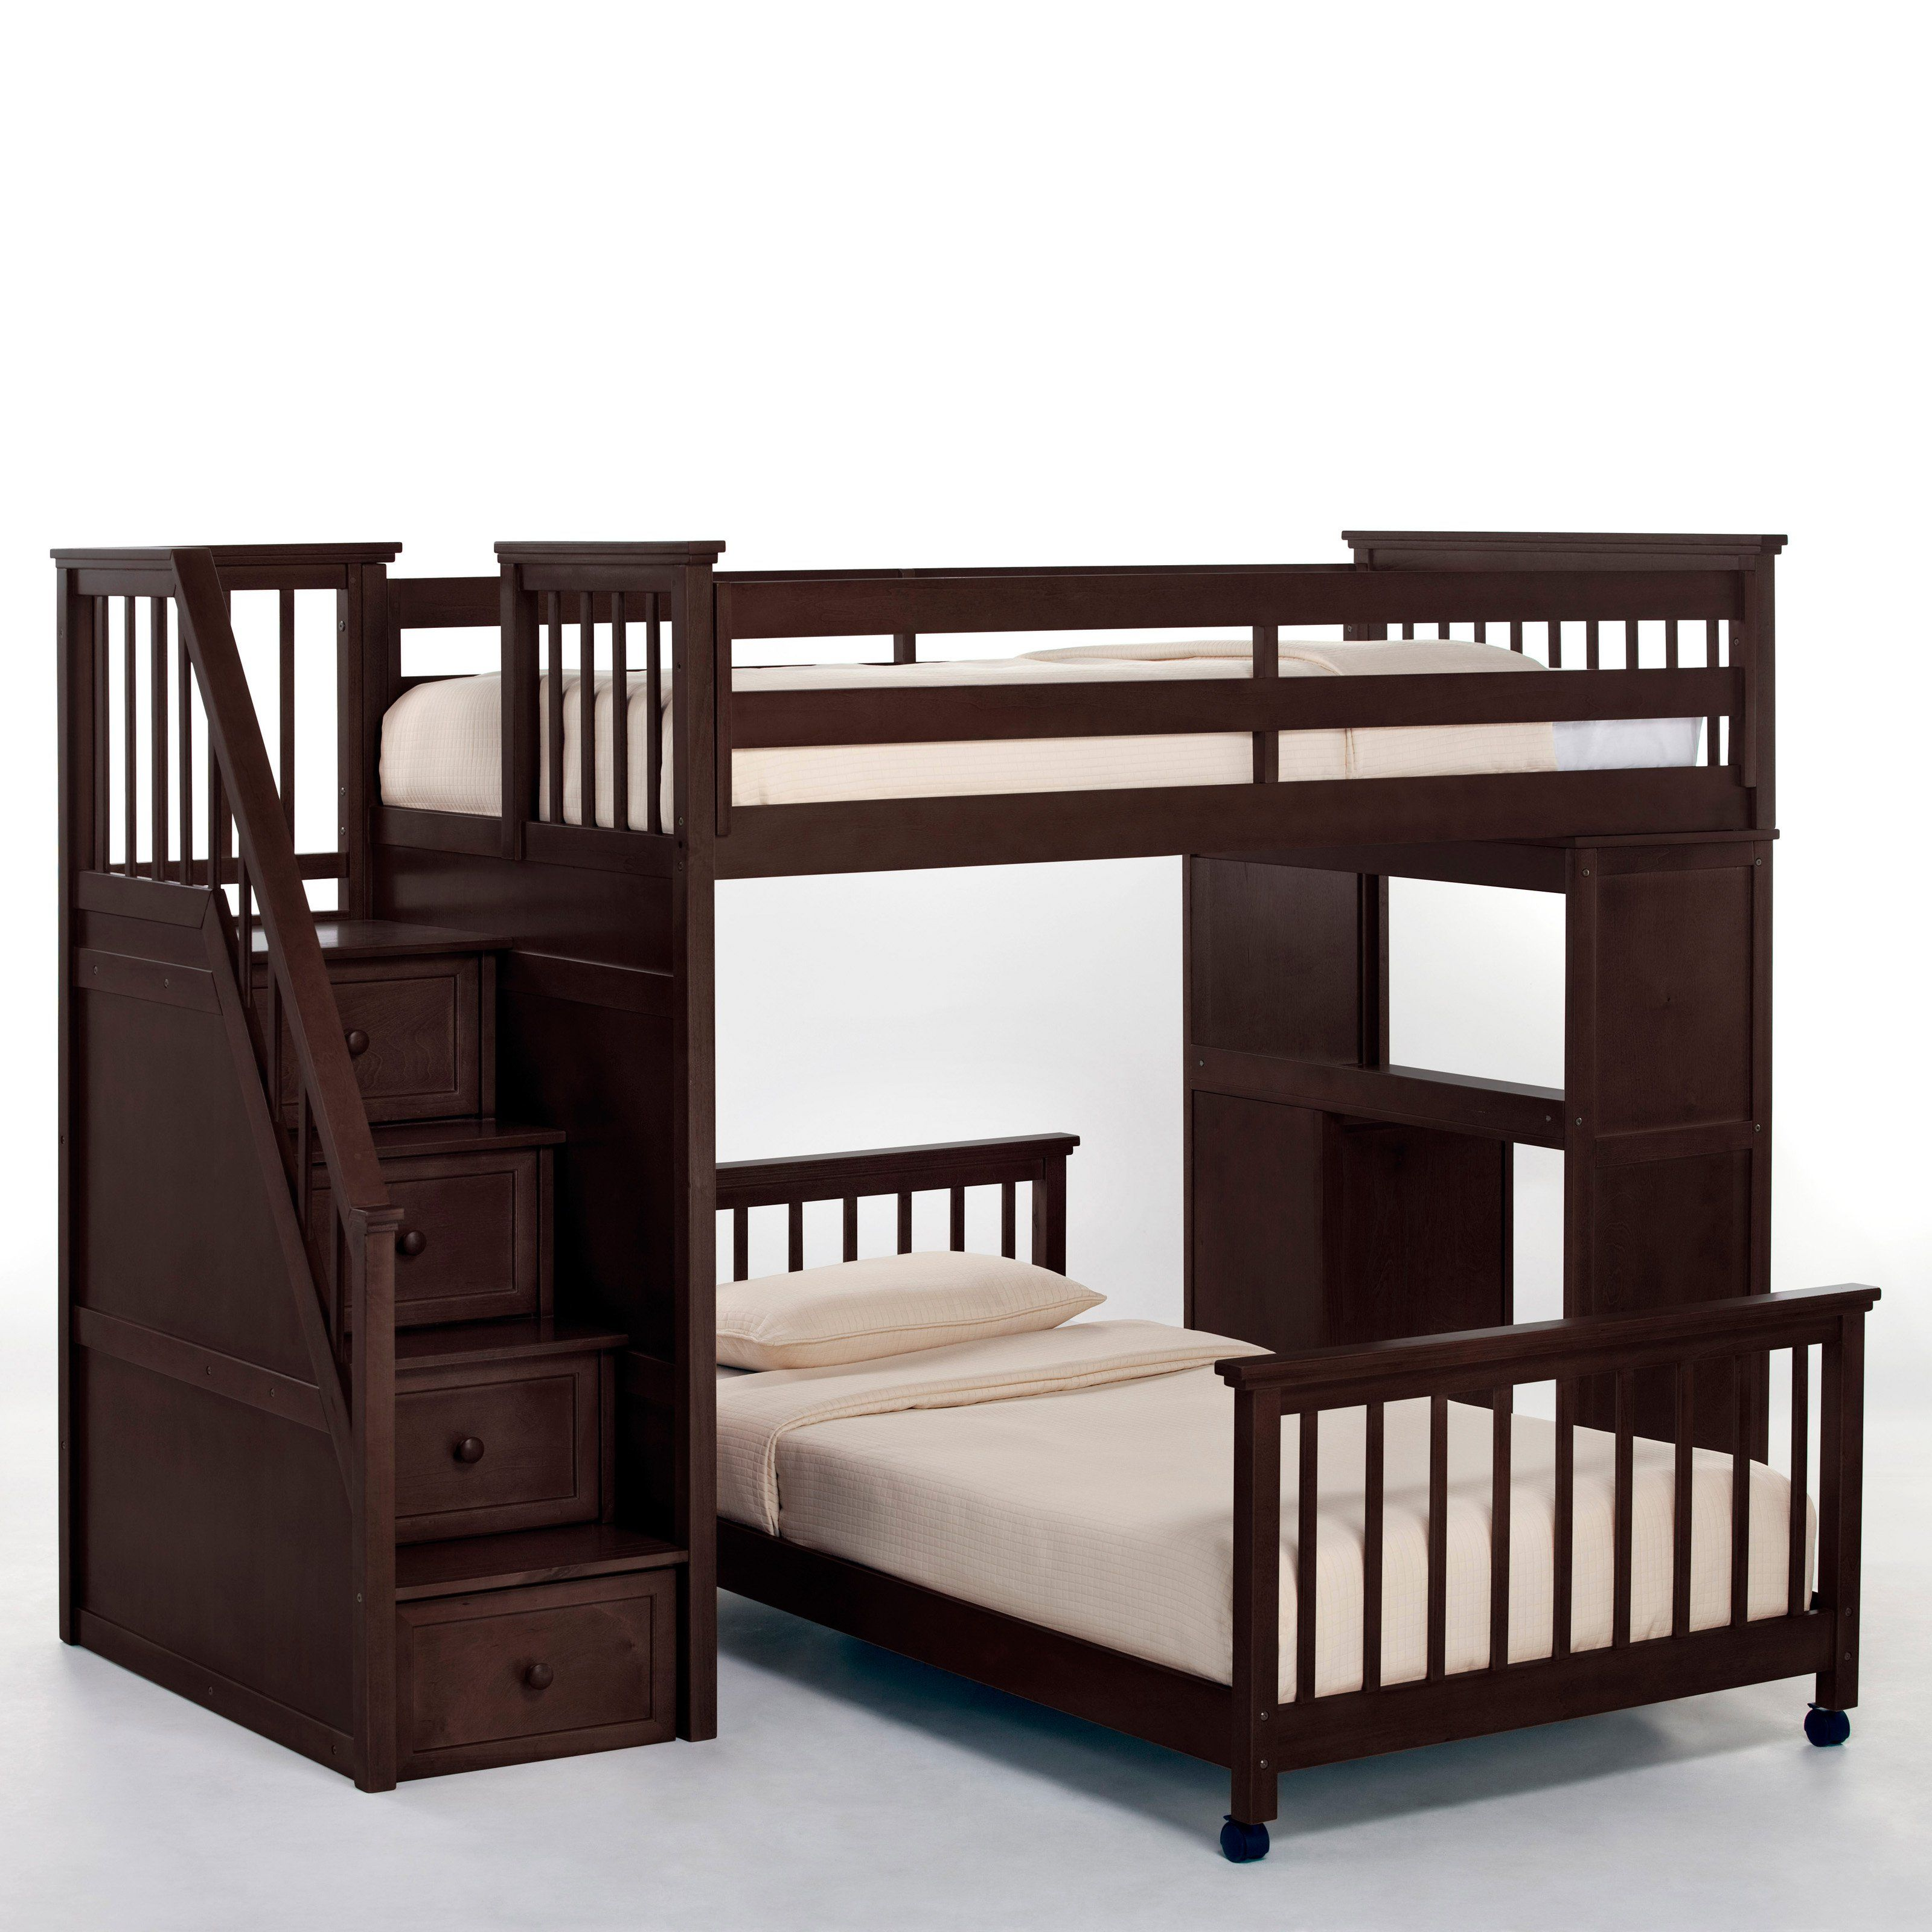 Loft bedroom staircase  Have to have it Schoolhouse Stairway Loft Bed  Chocolate